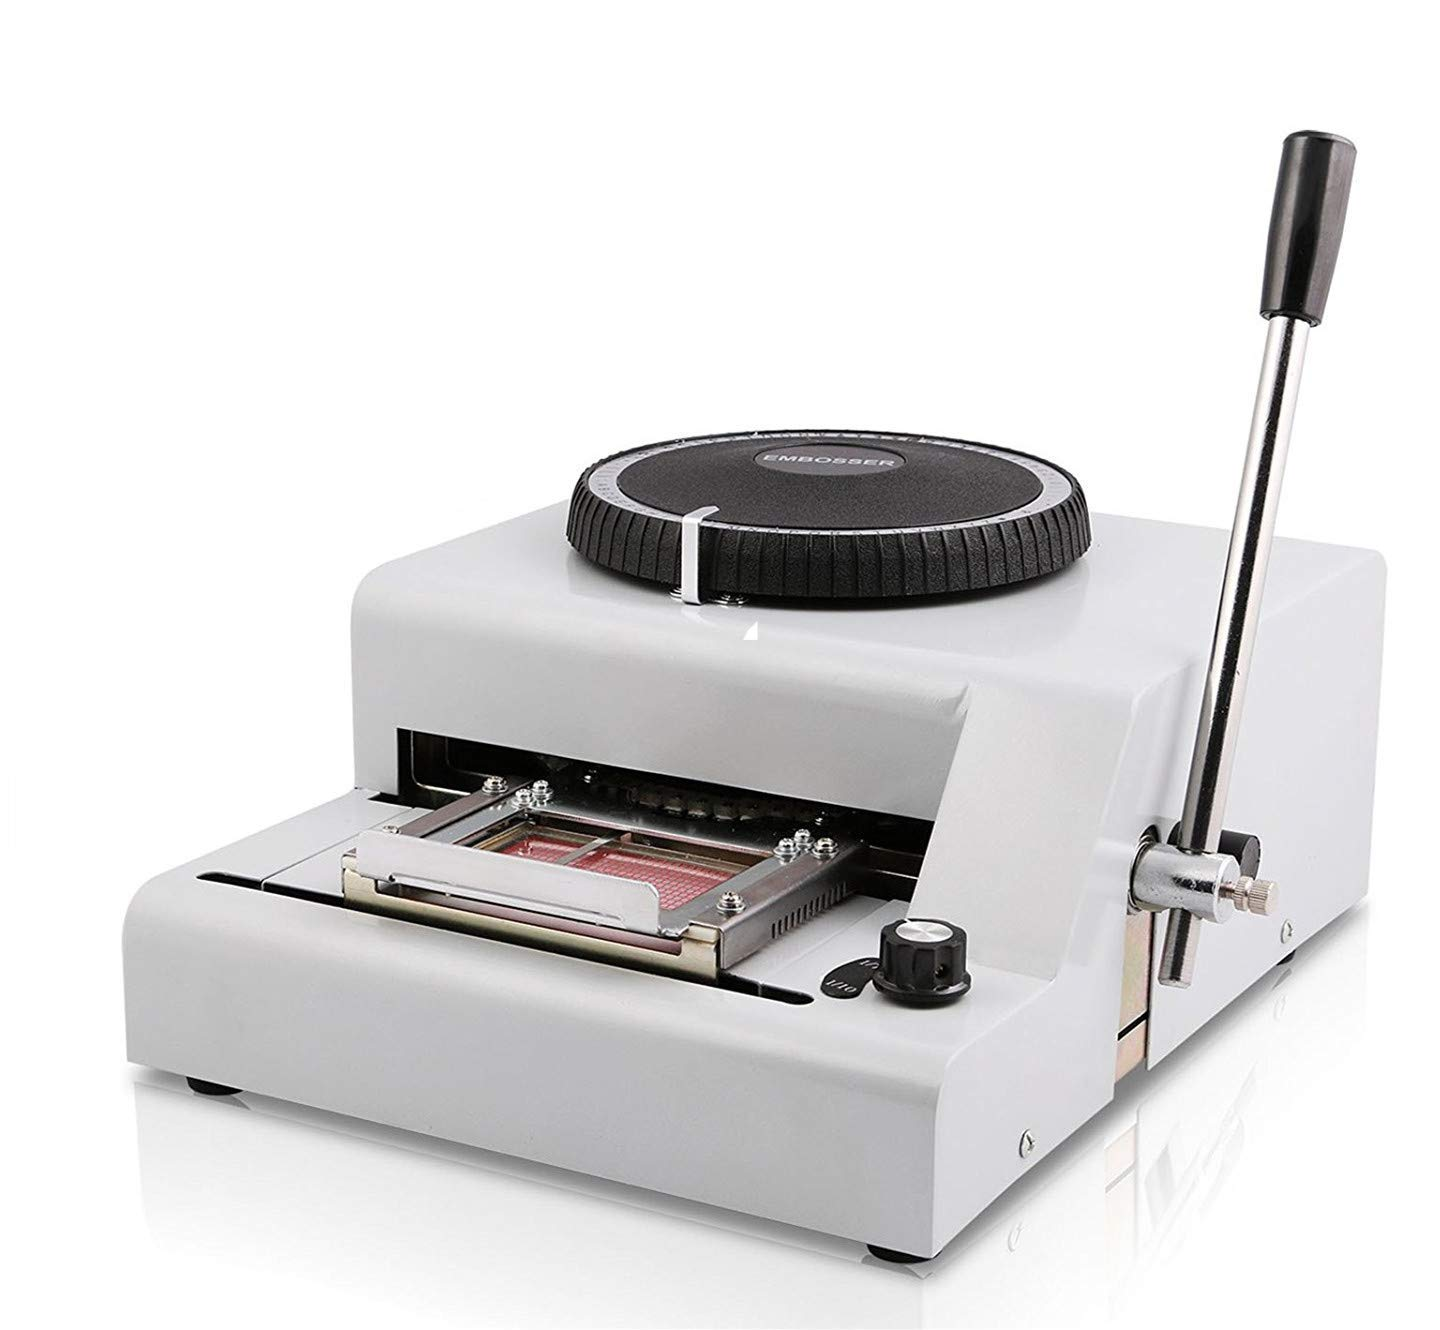 SHZOND Embossing Machine 72 Characters Card Embosser Printer Gift Card Credit ID PVC Card Embosser Stamping Machine Manual Embosser Machine (Renewed)